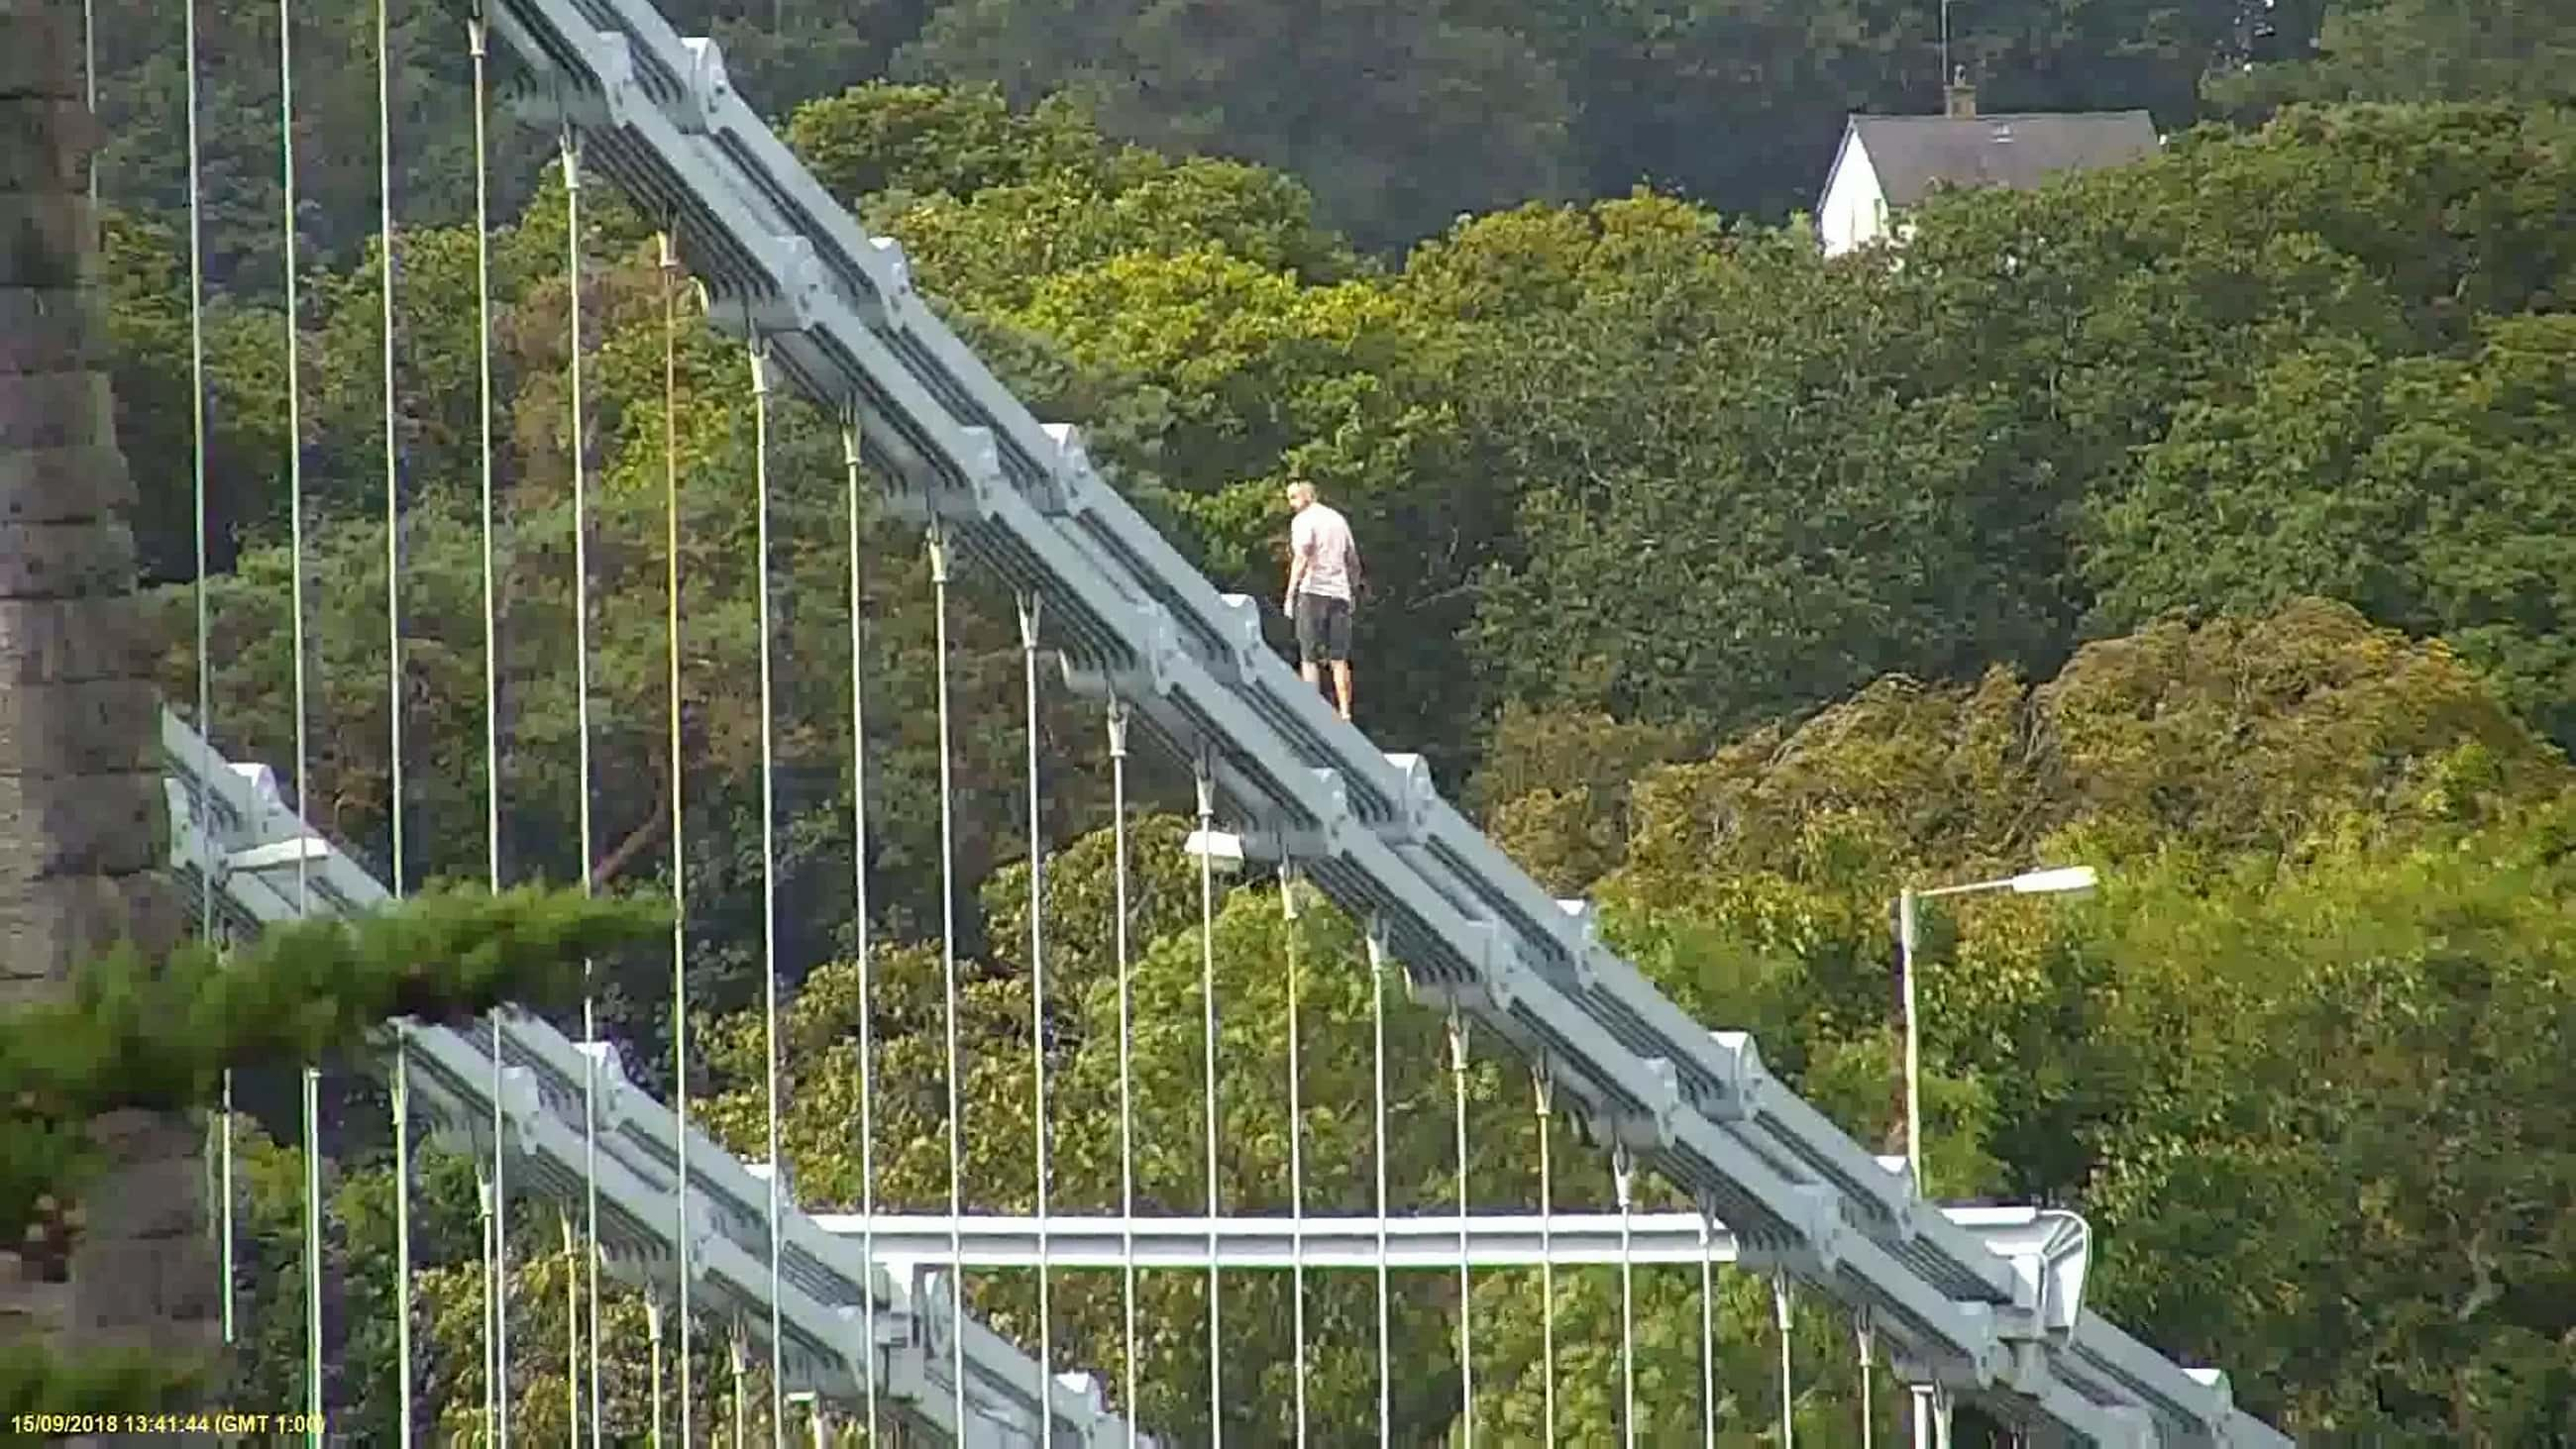 Police had to close off the bridge causing two-hour long tailbacks while Jones walked along the railings with his t-shirt off (SWNS)